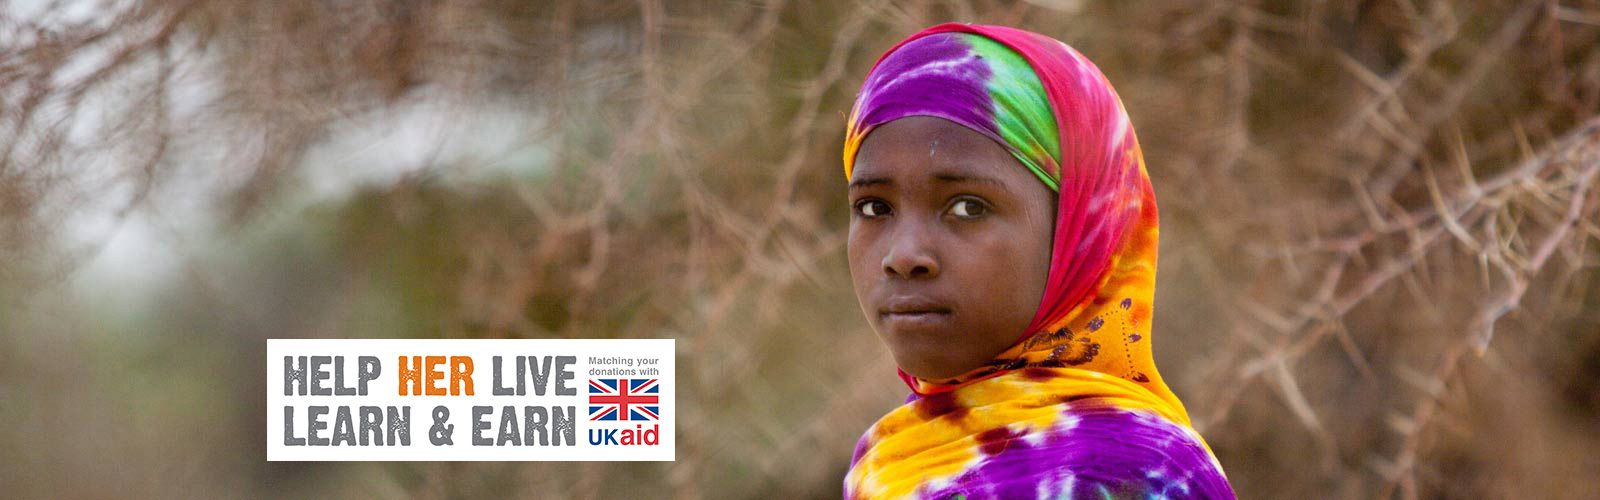 A girl from Chad. Text reads: Help Her Live, Learn and Earn. Matching your donations with UKAID.